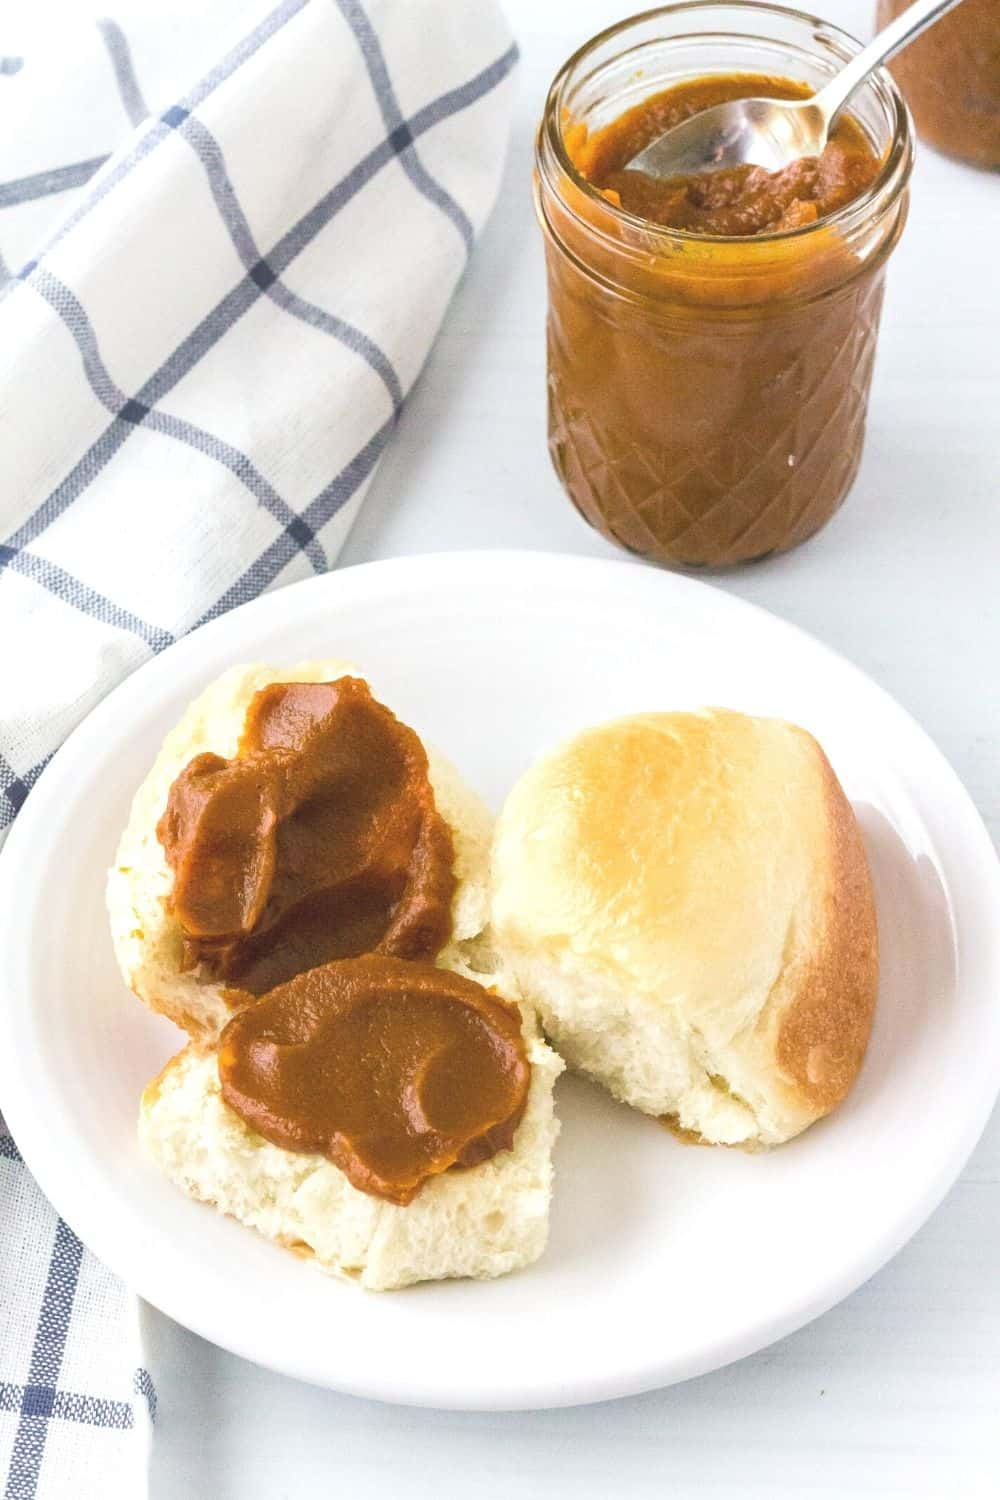 pressure cooker pumpkin butter spread on a halved dinner roll and served on a white plate, with the jar of pumpkin butter in the background.